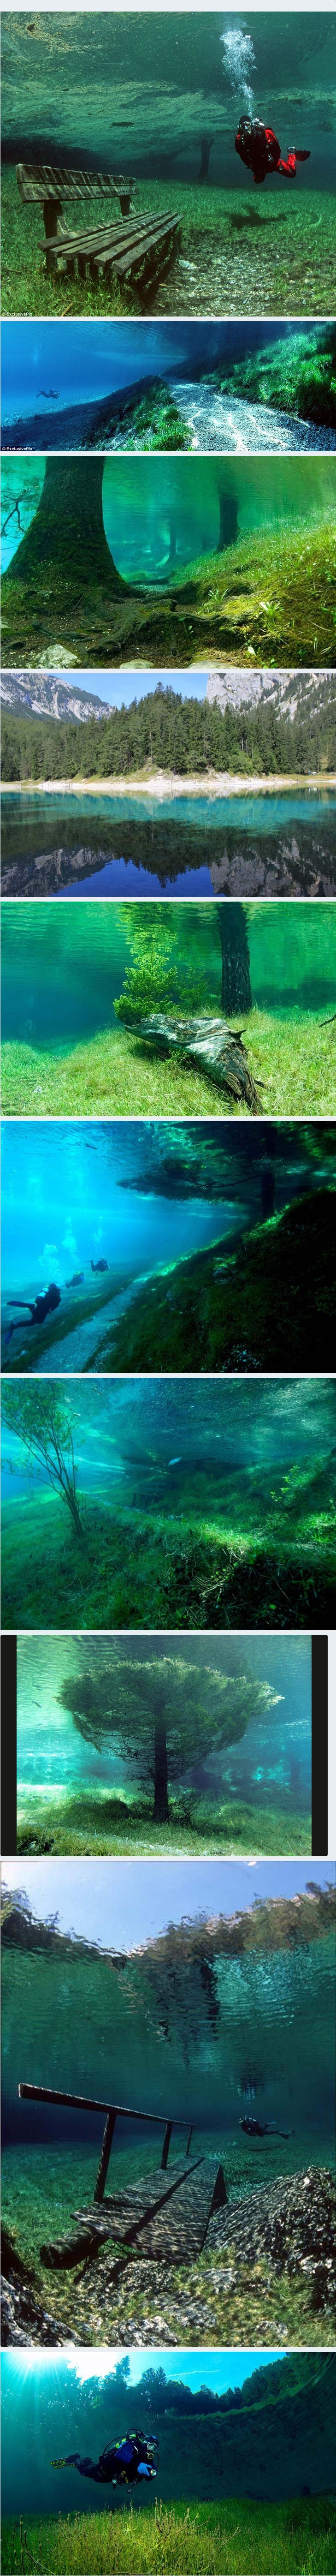 This park in Austria submerges from early spring until about July then drys up rest of the year.